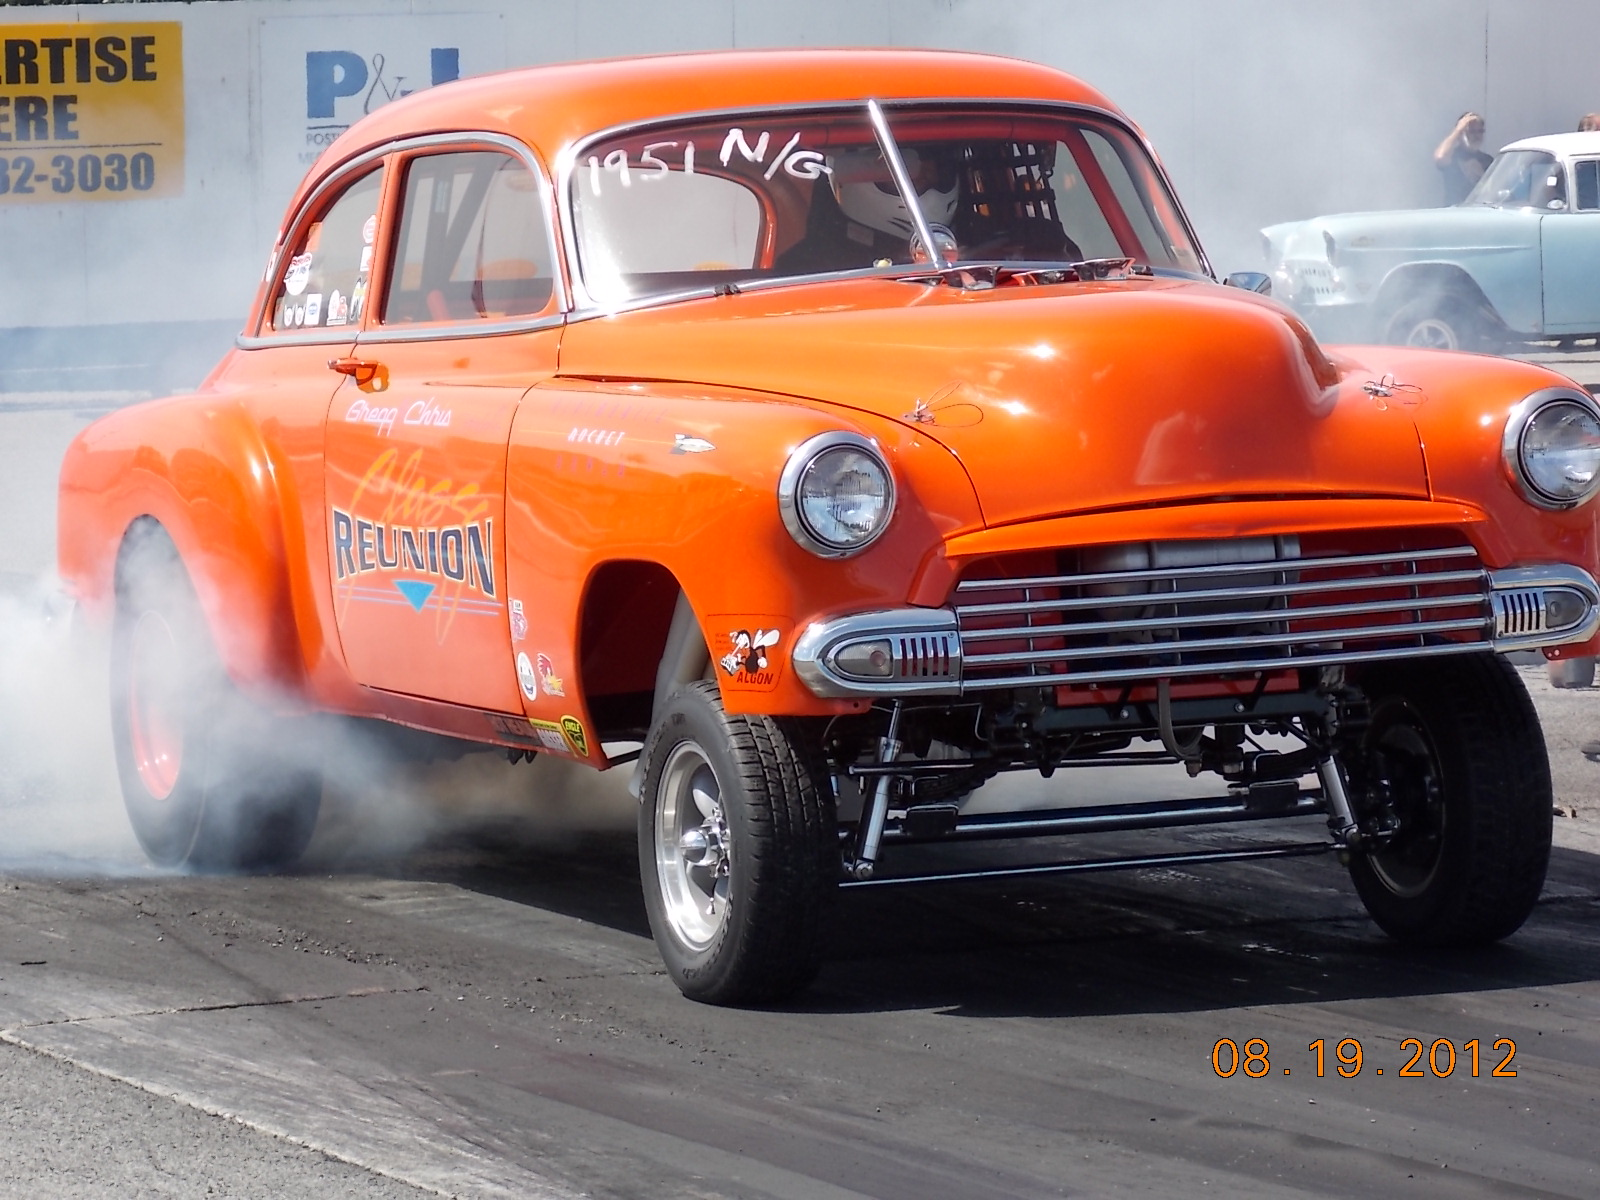 Event Coverage: Empire Nostalgia Gold Cup Drag Race. Once Again The Largest Gasser Gathering In The USA!